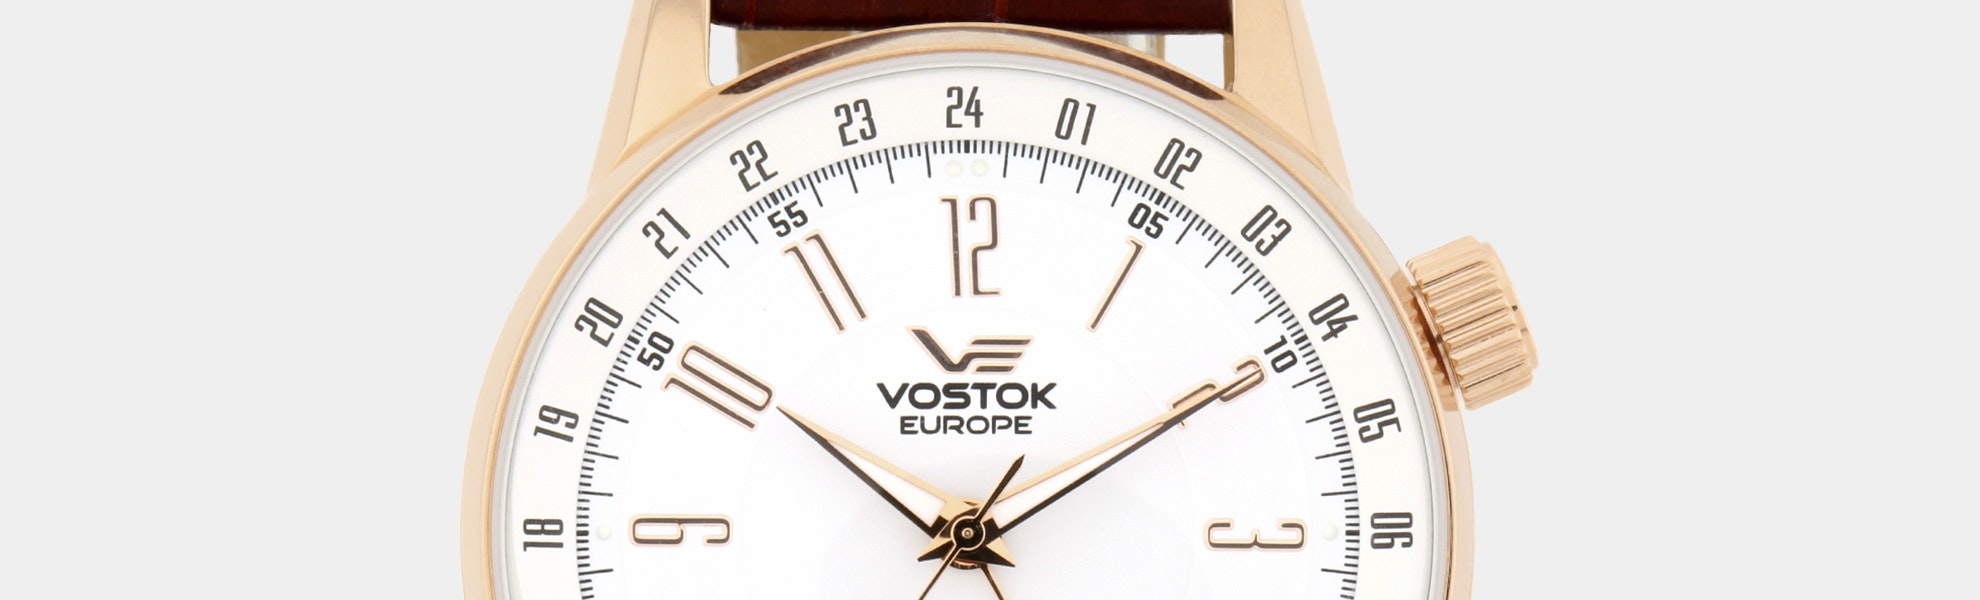 Vostok-Europe GAZ-Limo Dual Time Automatic Watch